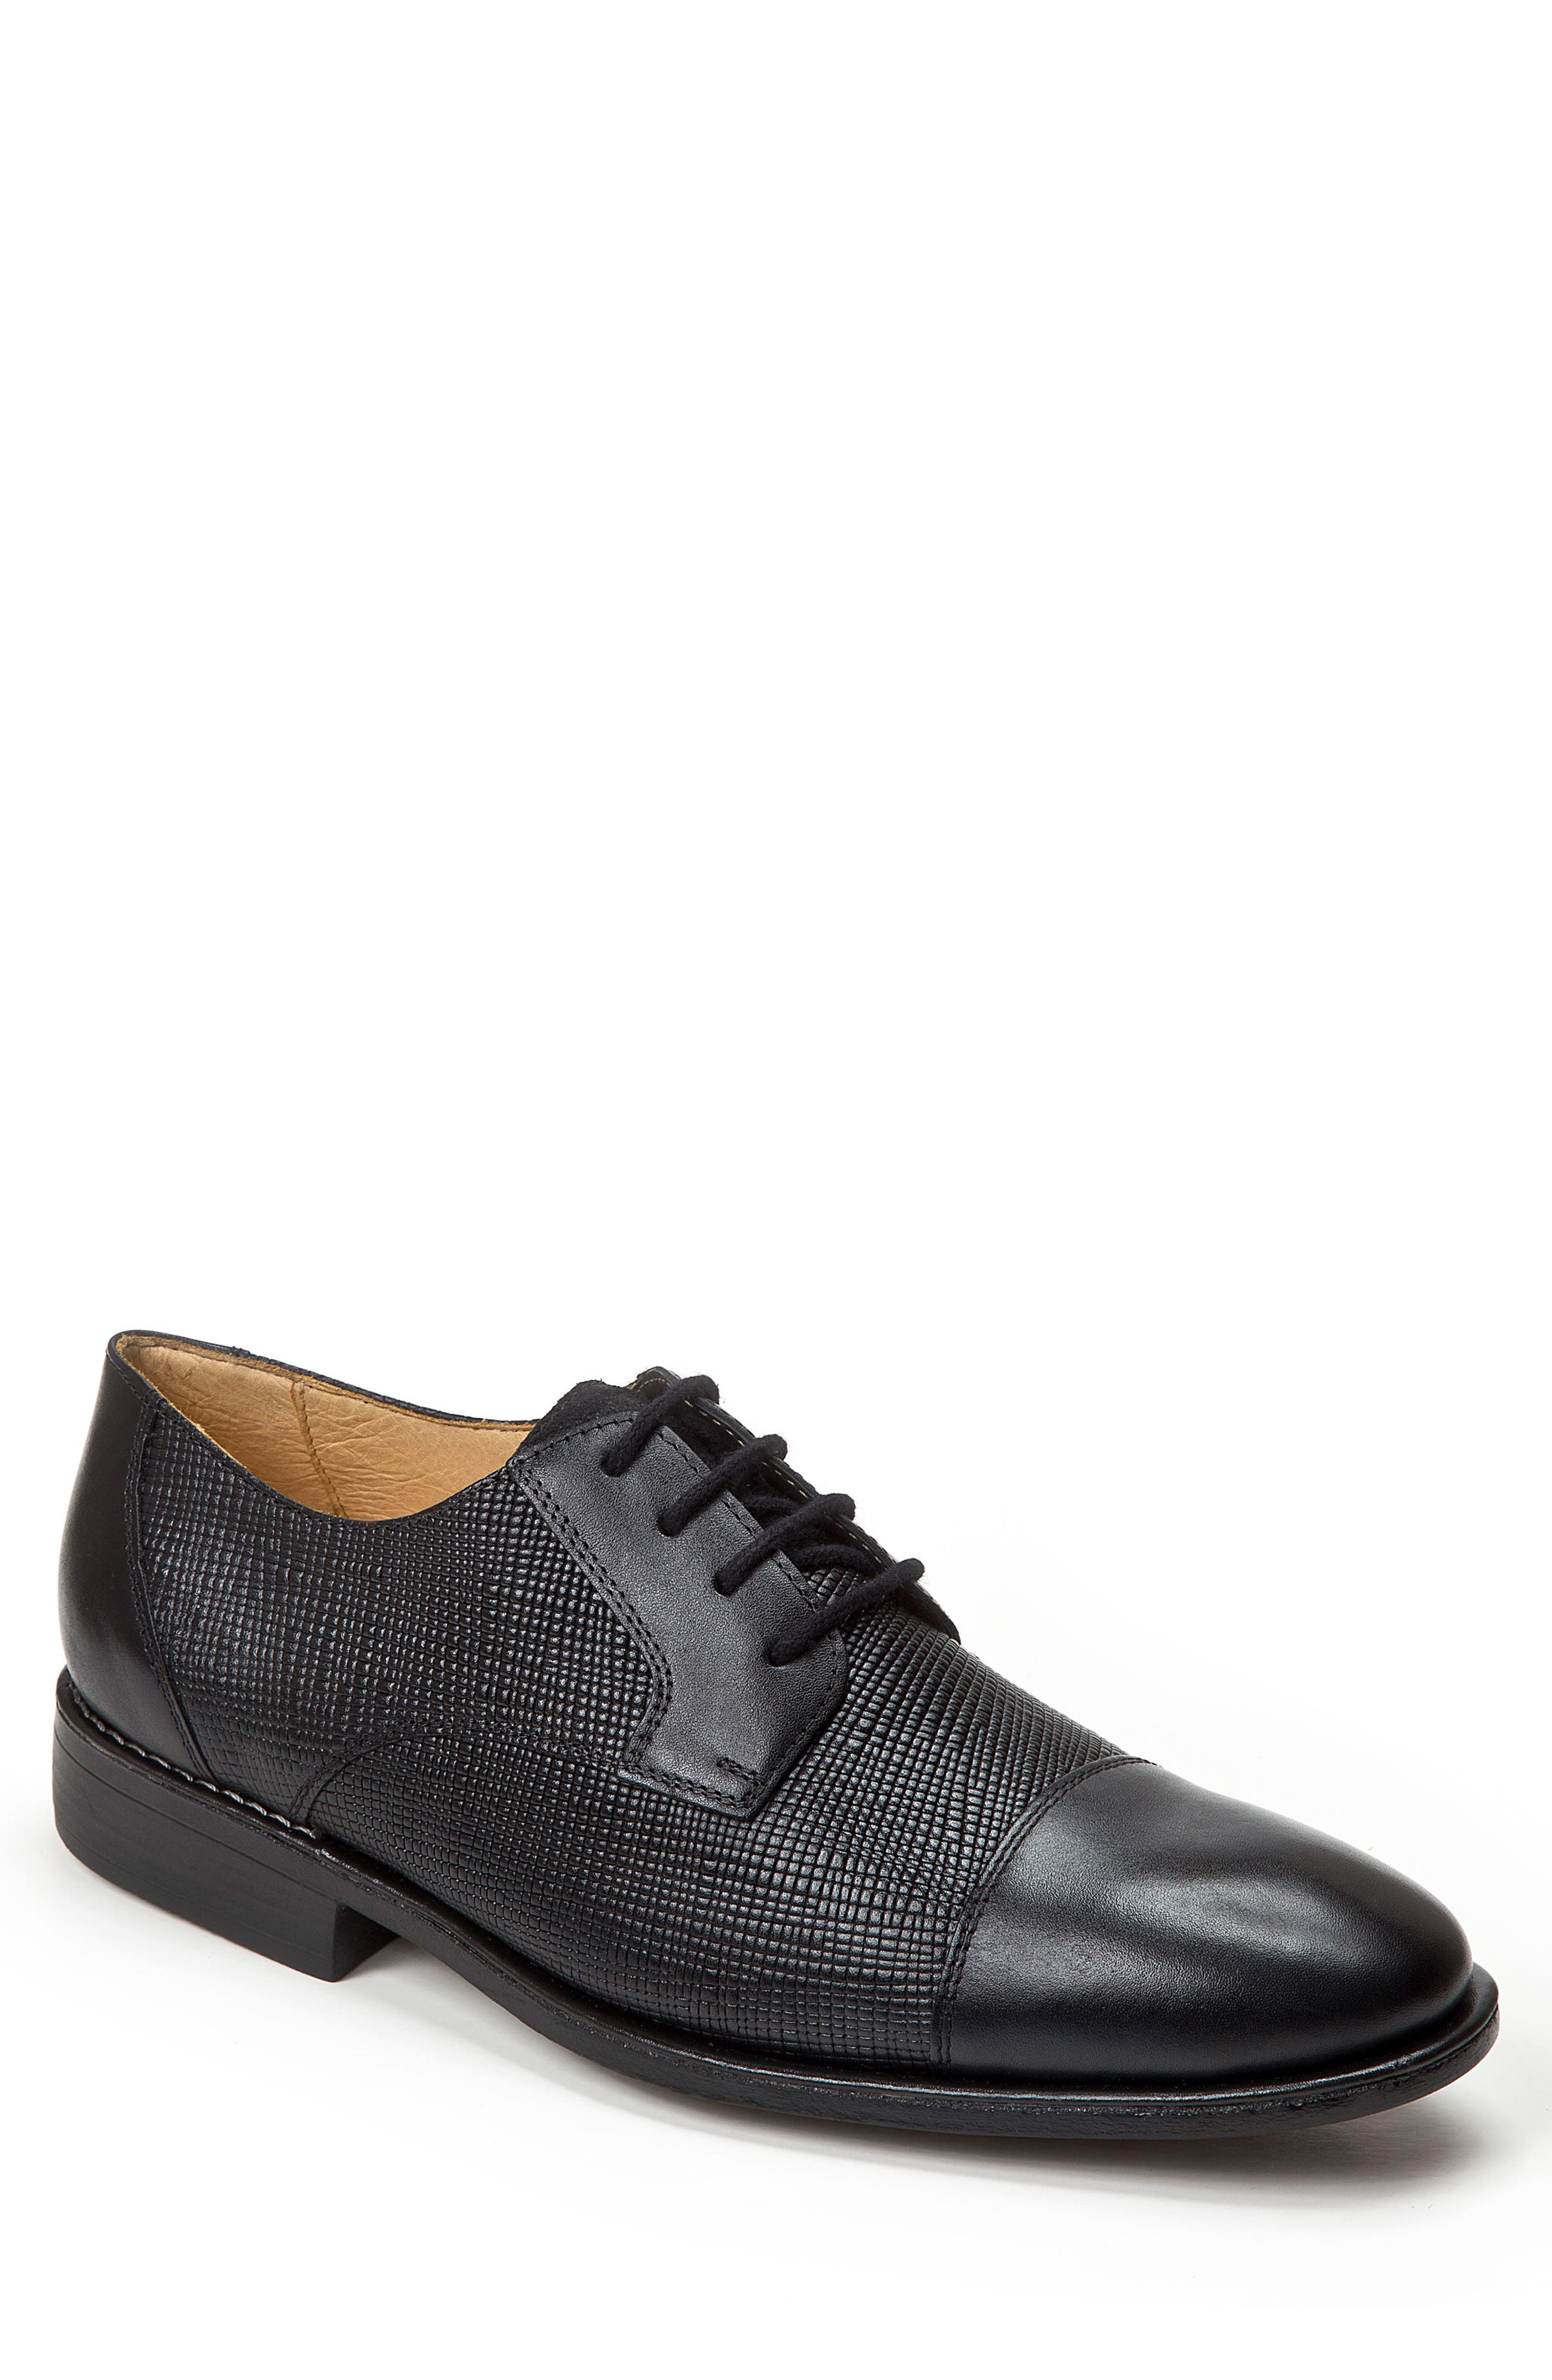 Ronny Embossed Cap Toe Derby,                             Main thumbnail 1, color,                             001